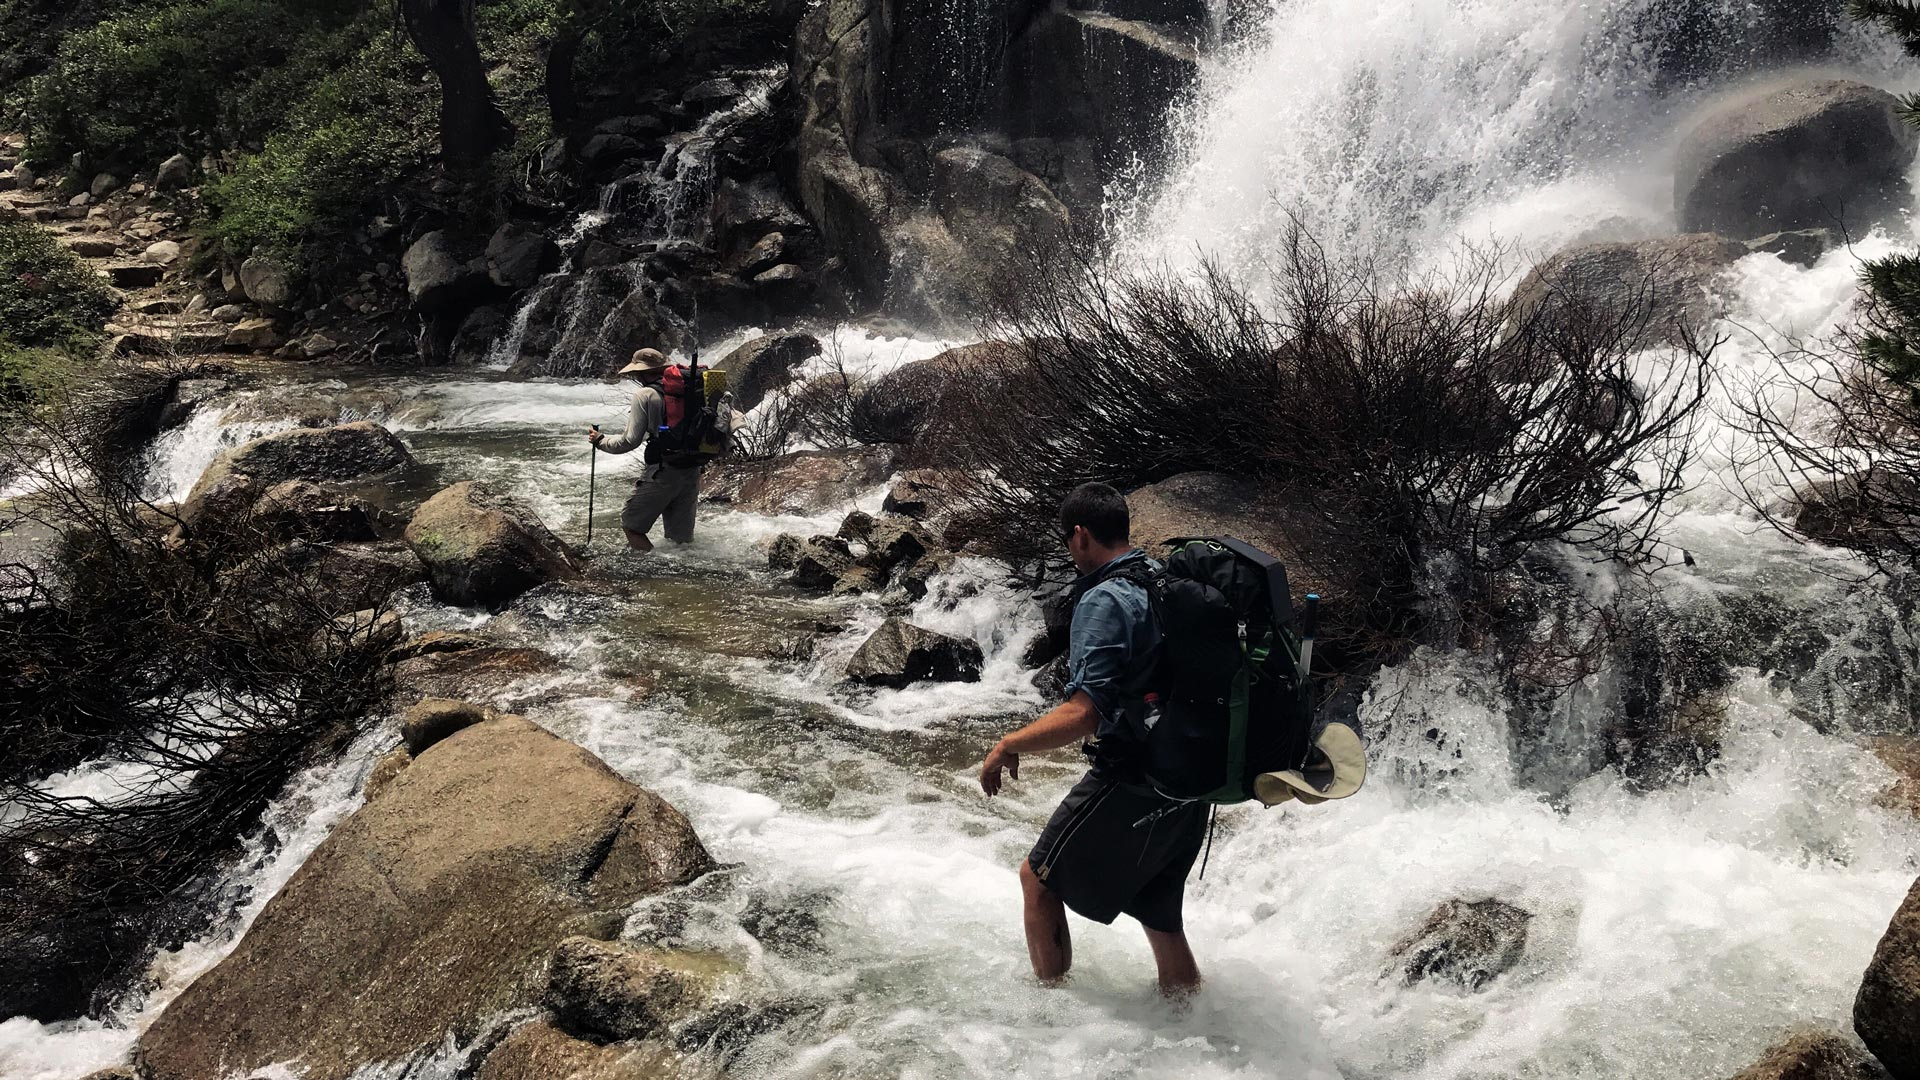 Two hikers attempt a safe crossing of a river while backpacking.